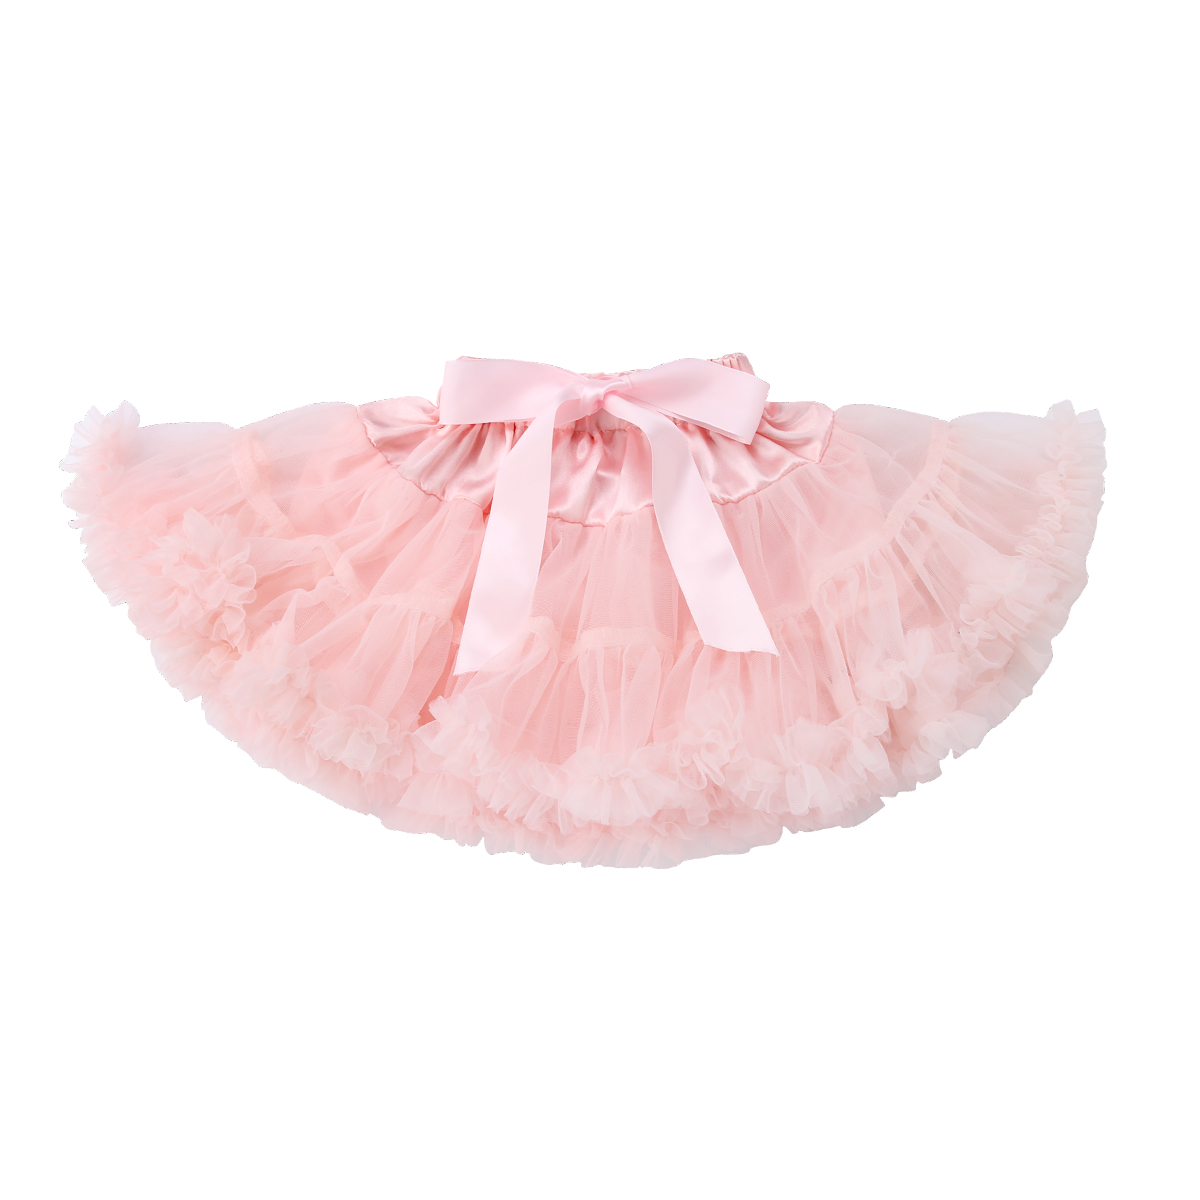 new cute Kids Girls Skirt Princess Pleated Fluffy skirt Petti bow lace skirt Party Dance Tutu skirt knot side pleated skirt